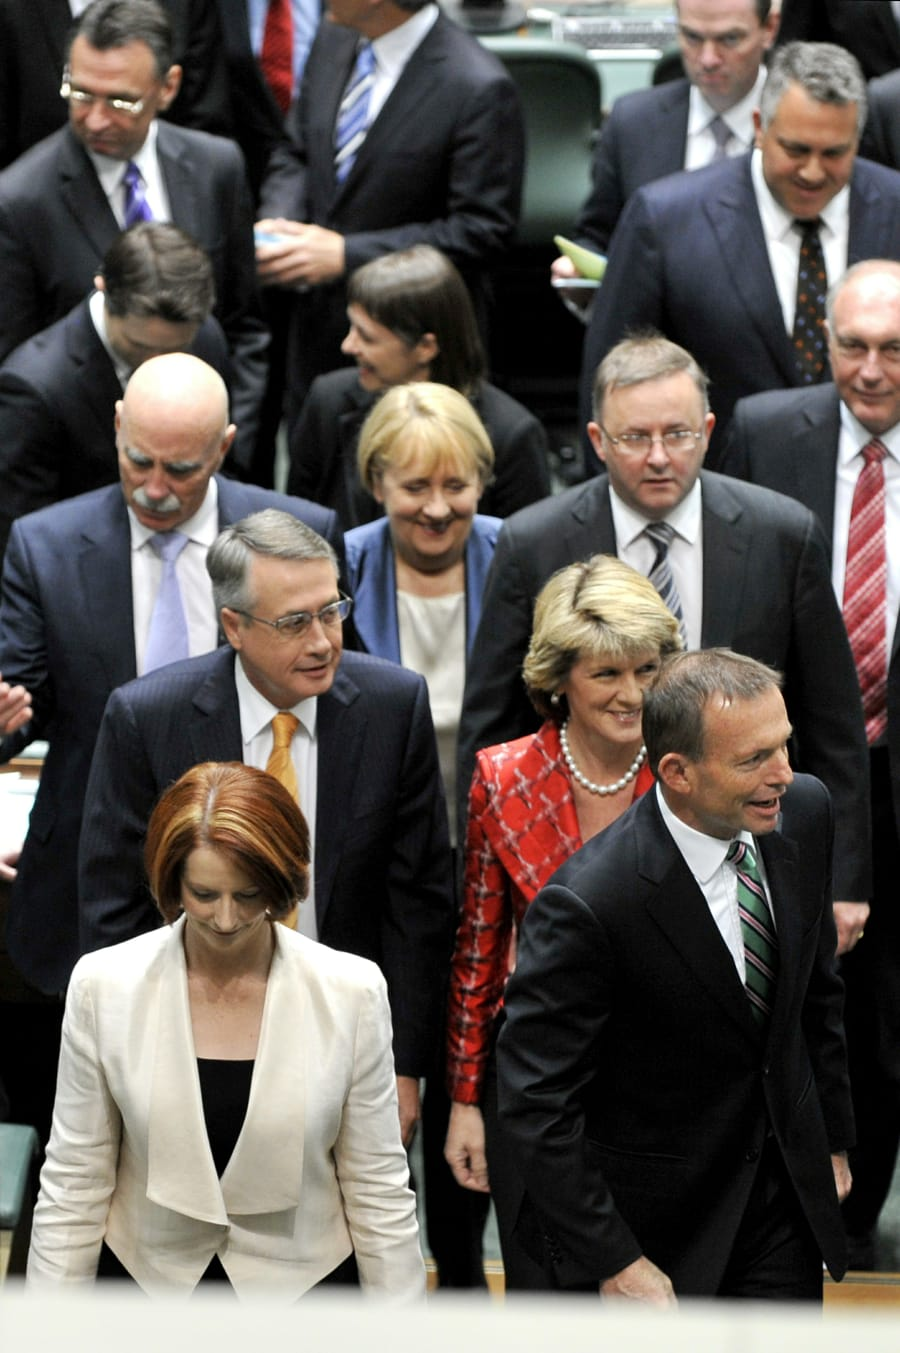 The opening of the 43rd parliament, in September 2010. In the foreground are then-Prime Minister Gillard...